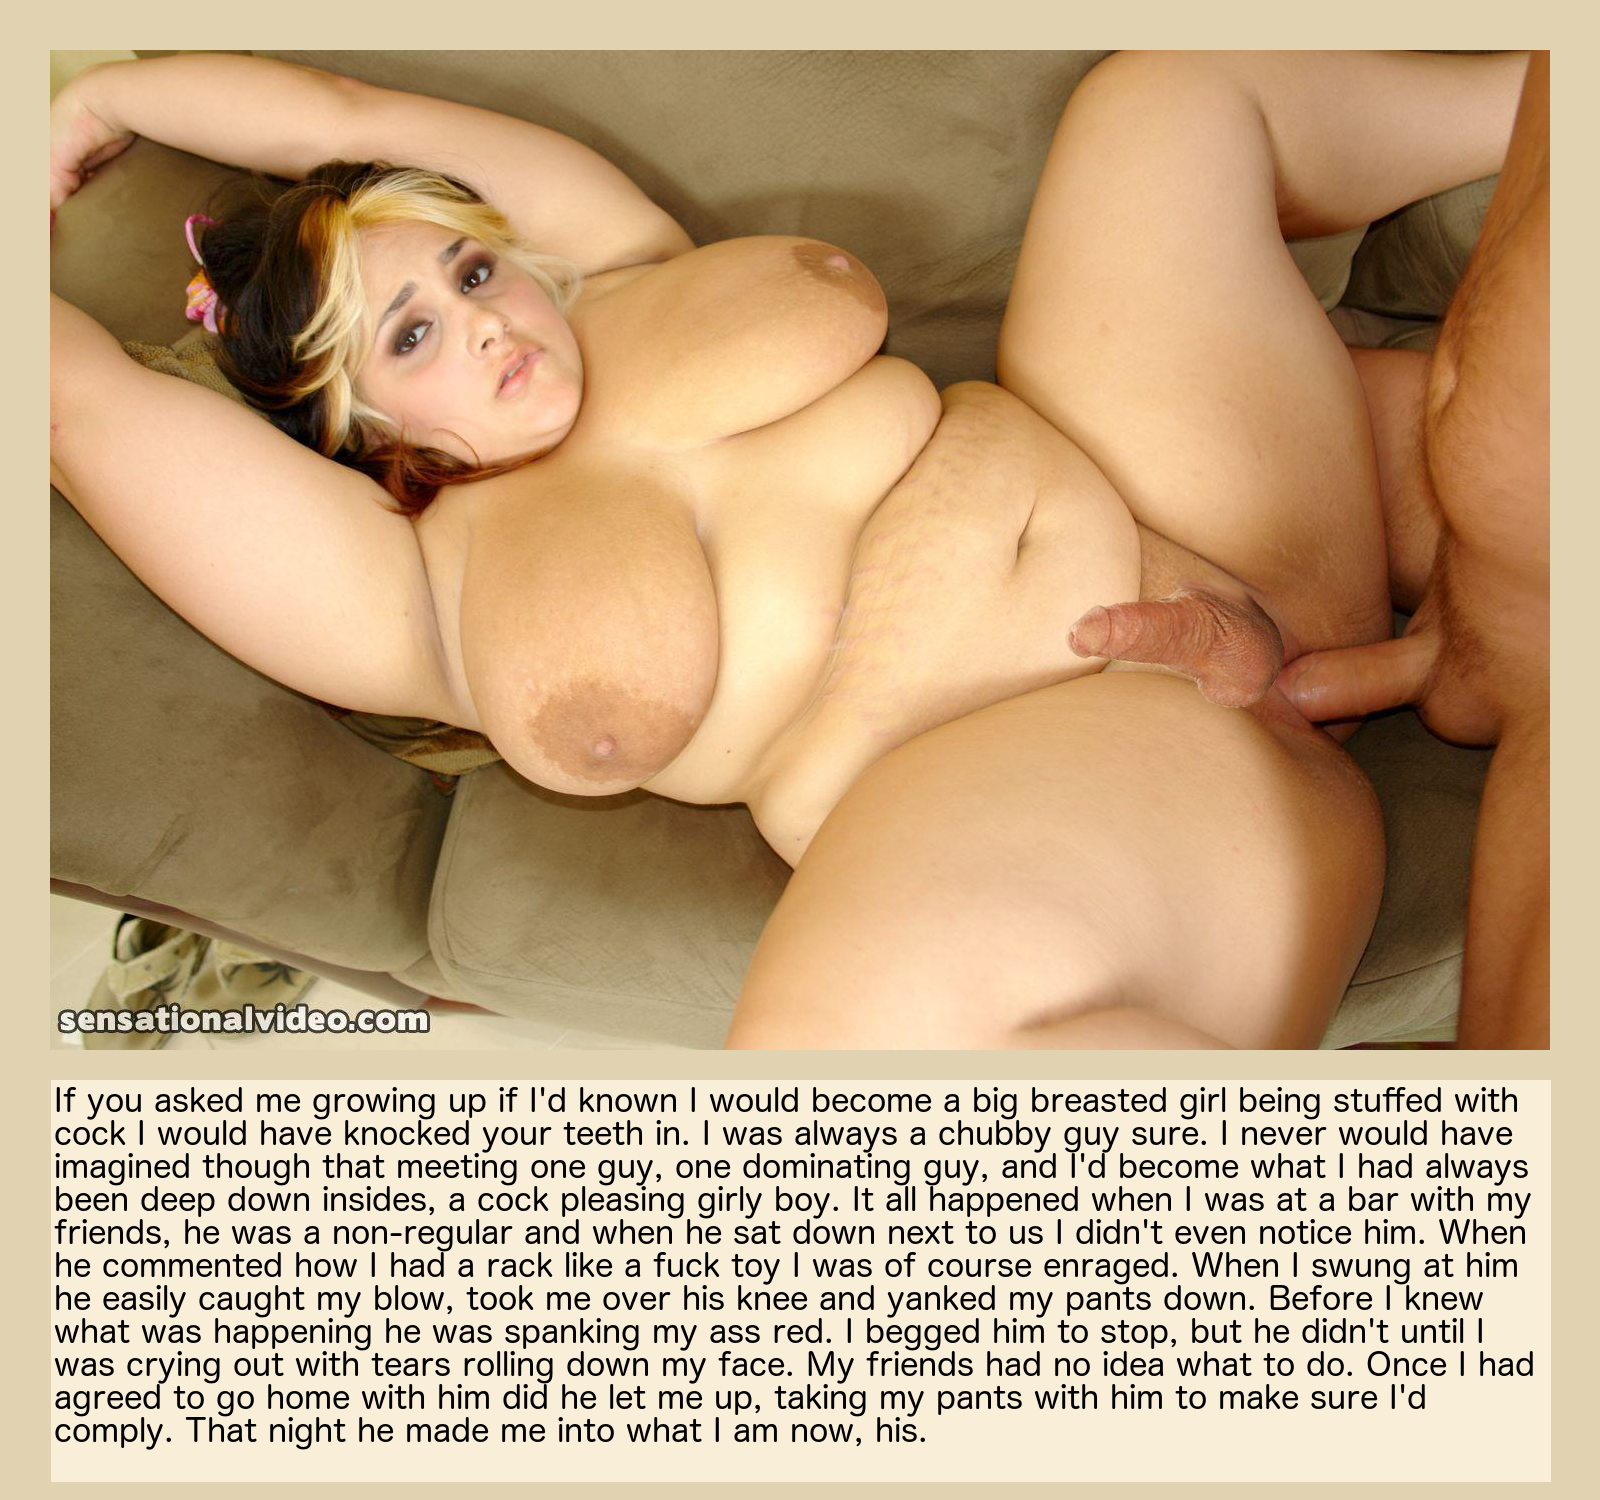 plump shemale captions bawdy plump chubby sissy captions png